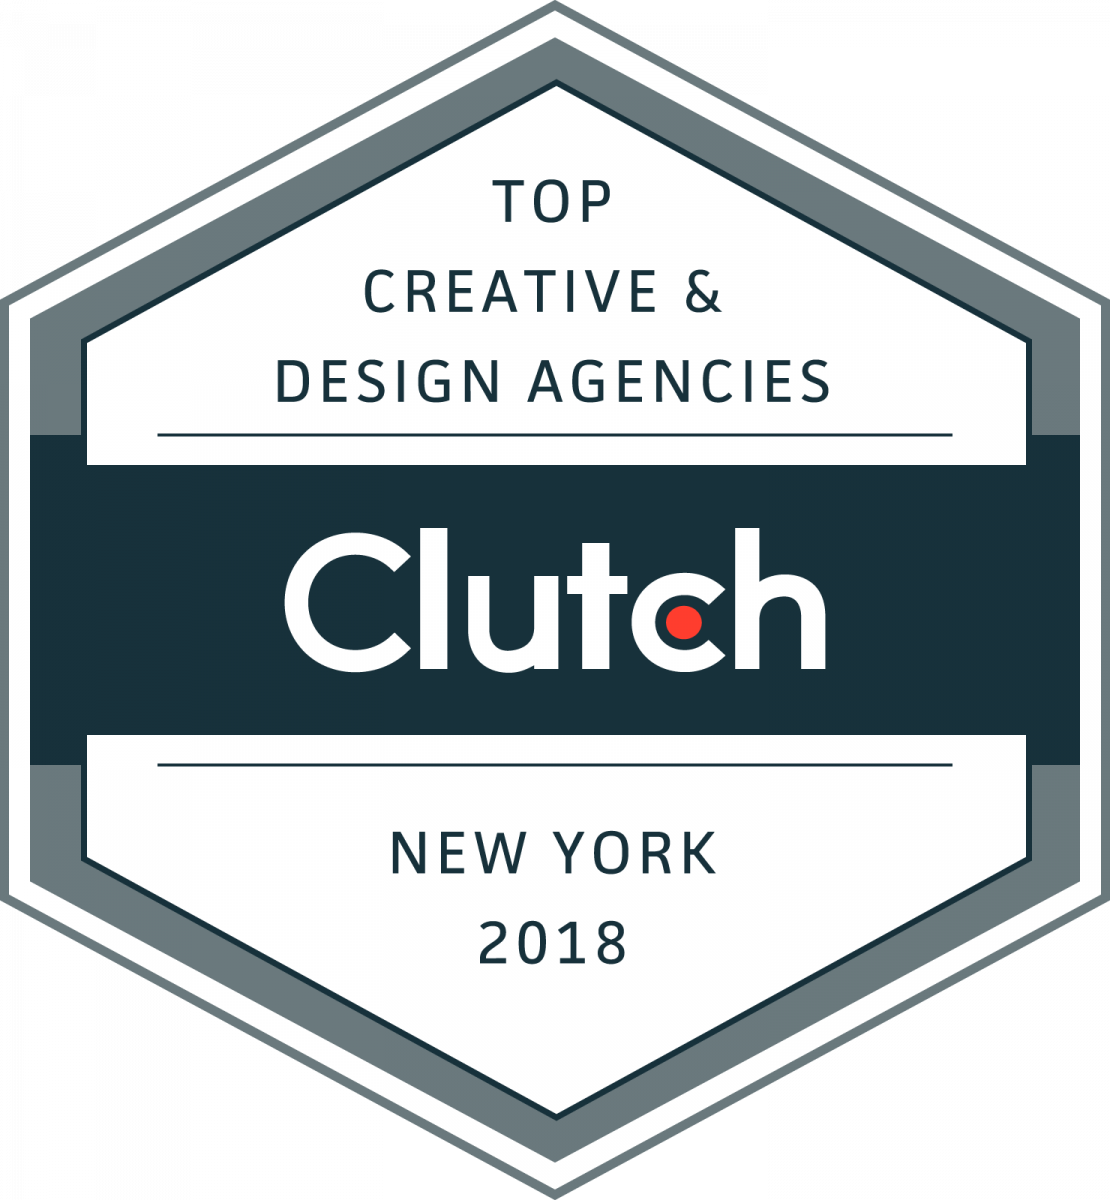 Top Creative & Design Agencies New York 2018